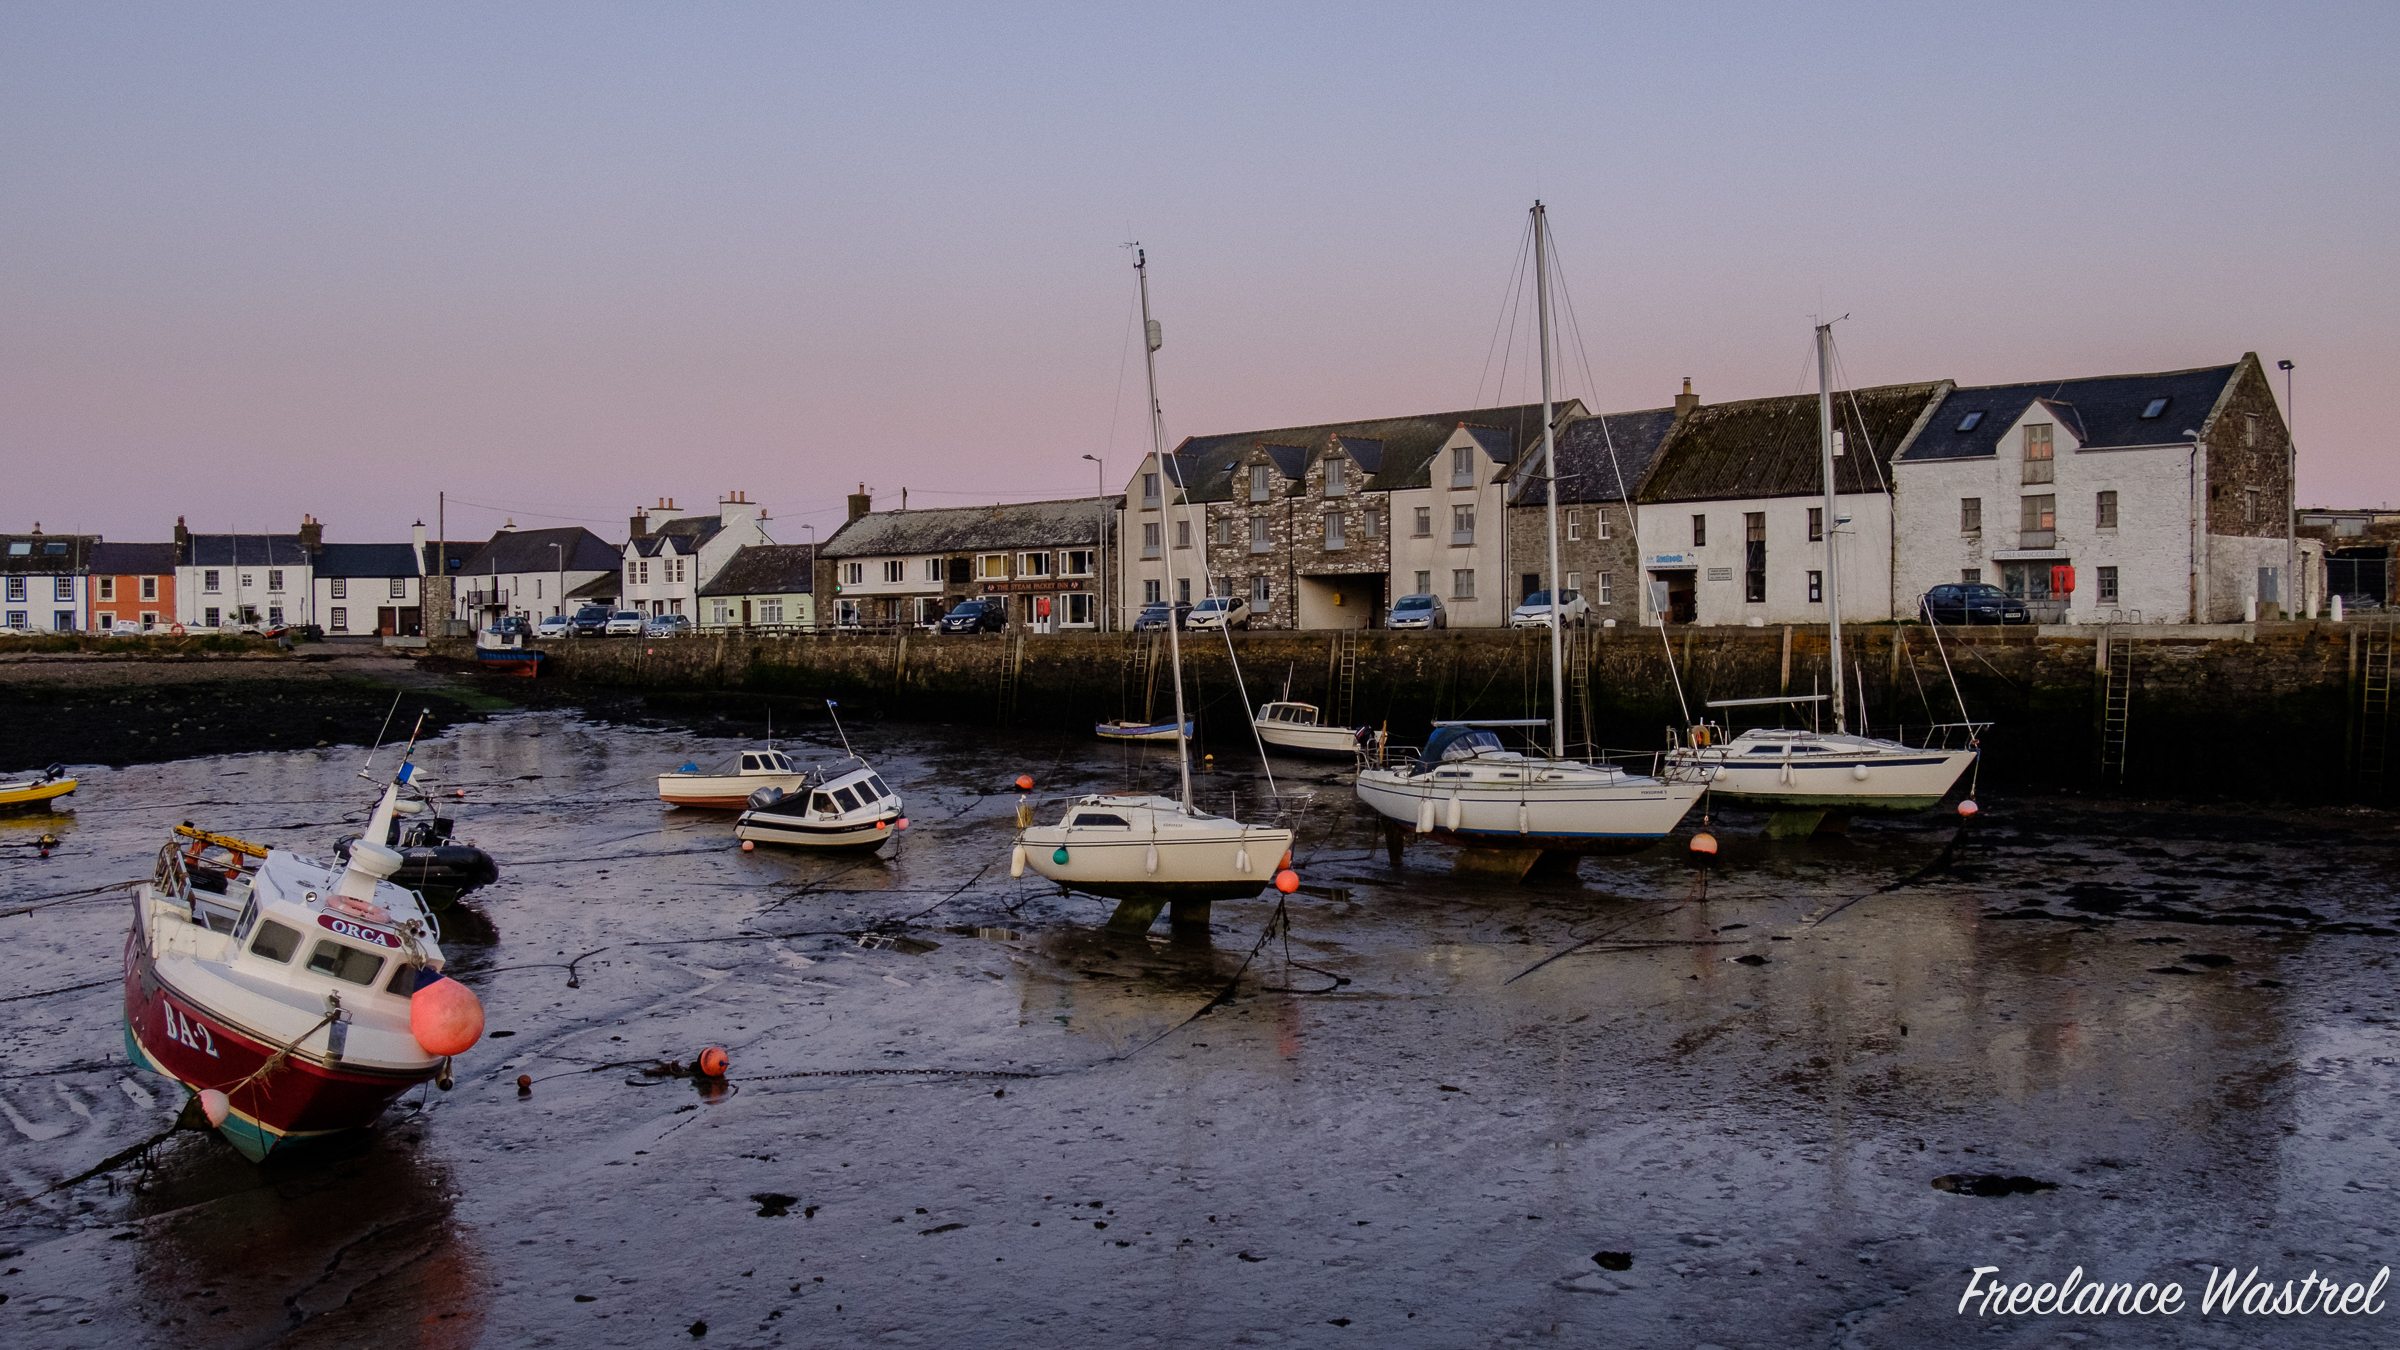 Harbour Row, Isle of Whithorn, October 2019